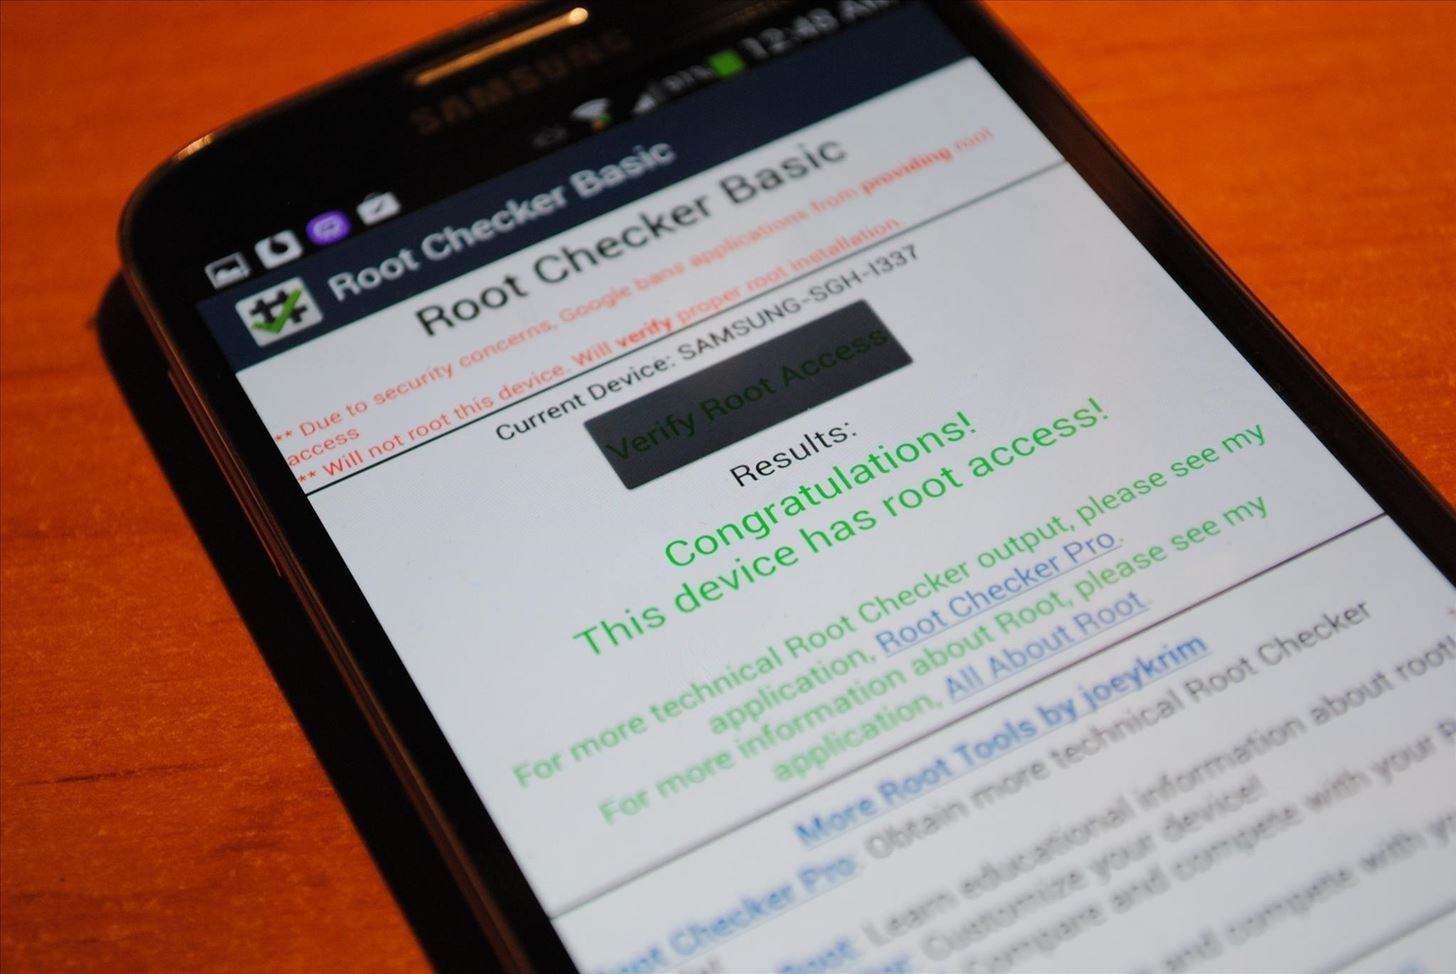 How to Root Your Samsung Galaxy S4 (Or Almost Any Other Android Phone) In One Easy Click